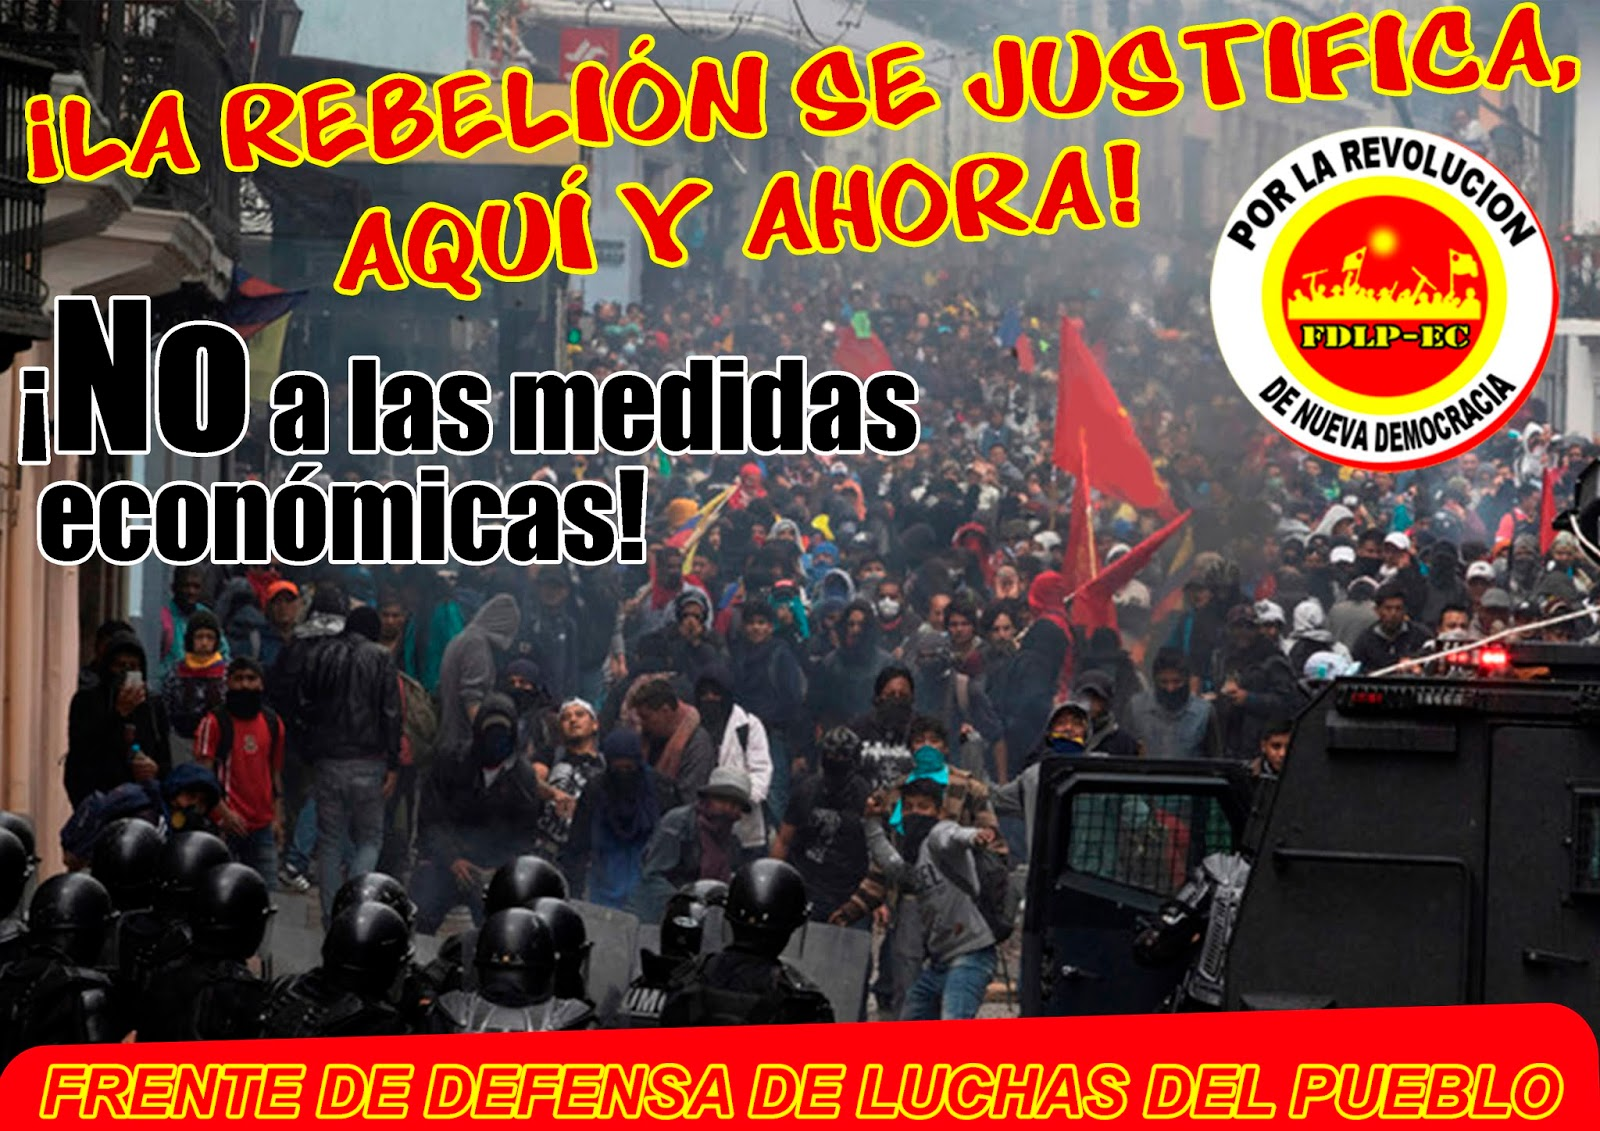 Ecuador it is right to rebell 2